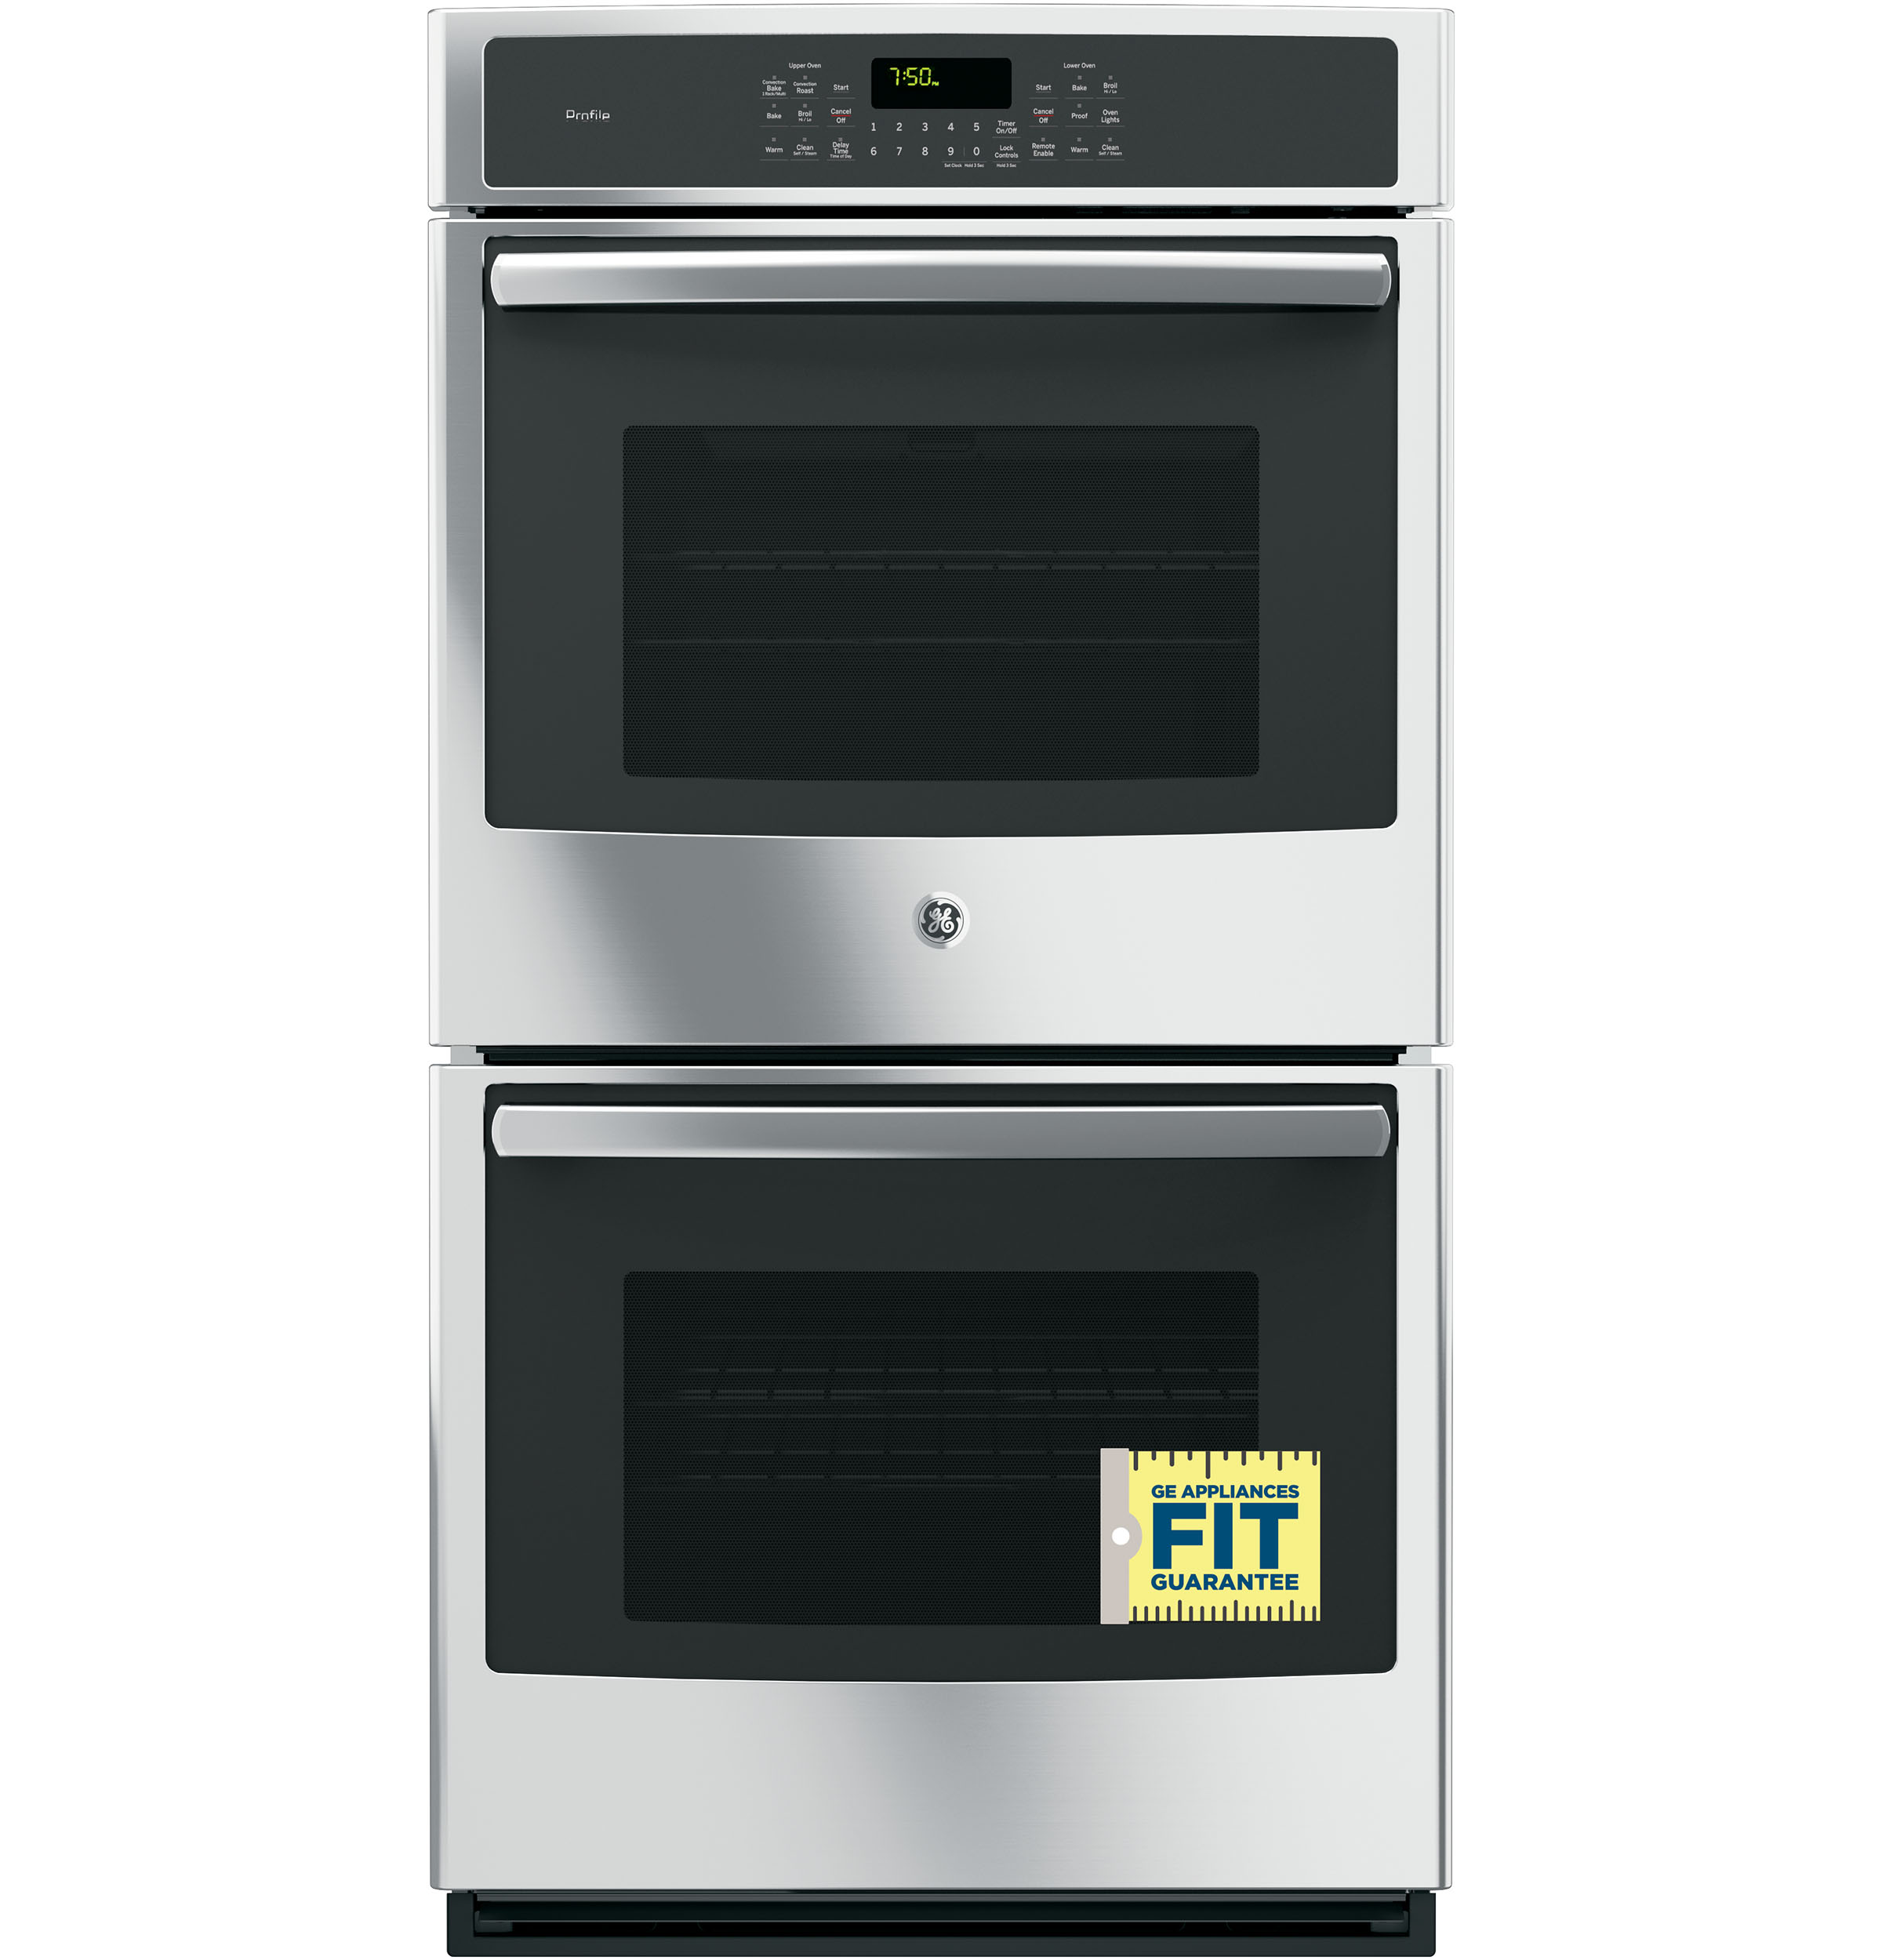 ge profile acirc cent series built in double convection wall oven product image product image product image product image product image